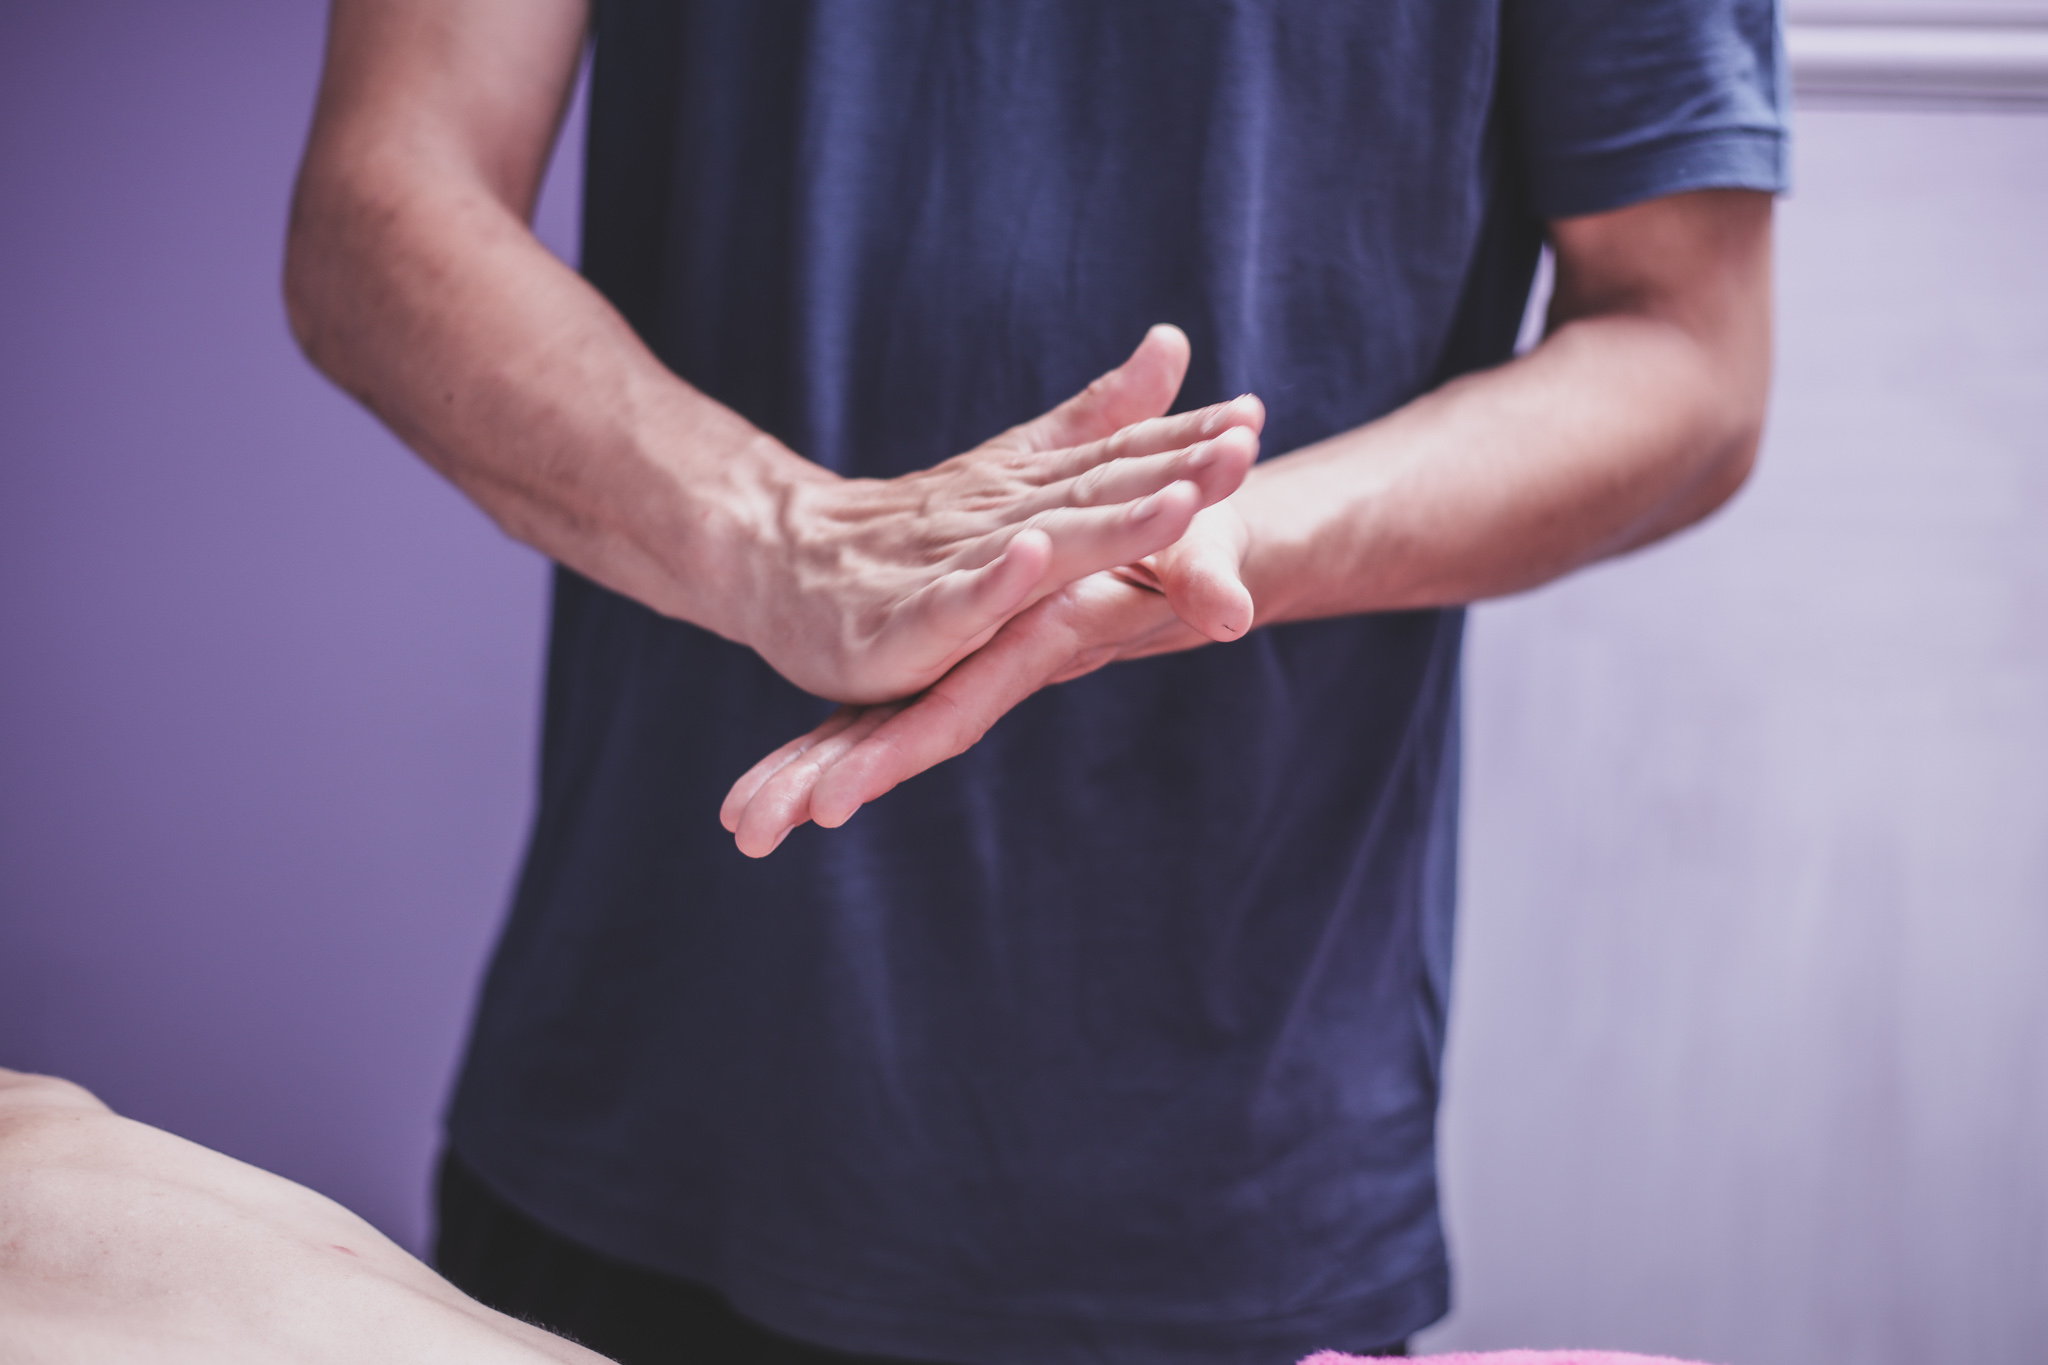 Sports Massage - Hands & Heart Therapy - July 2019 - LRC (51).jpg